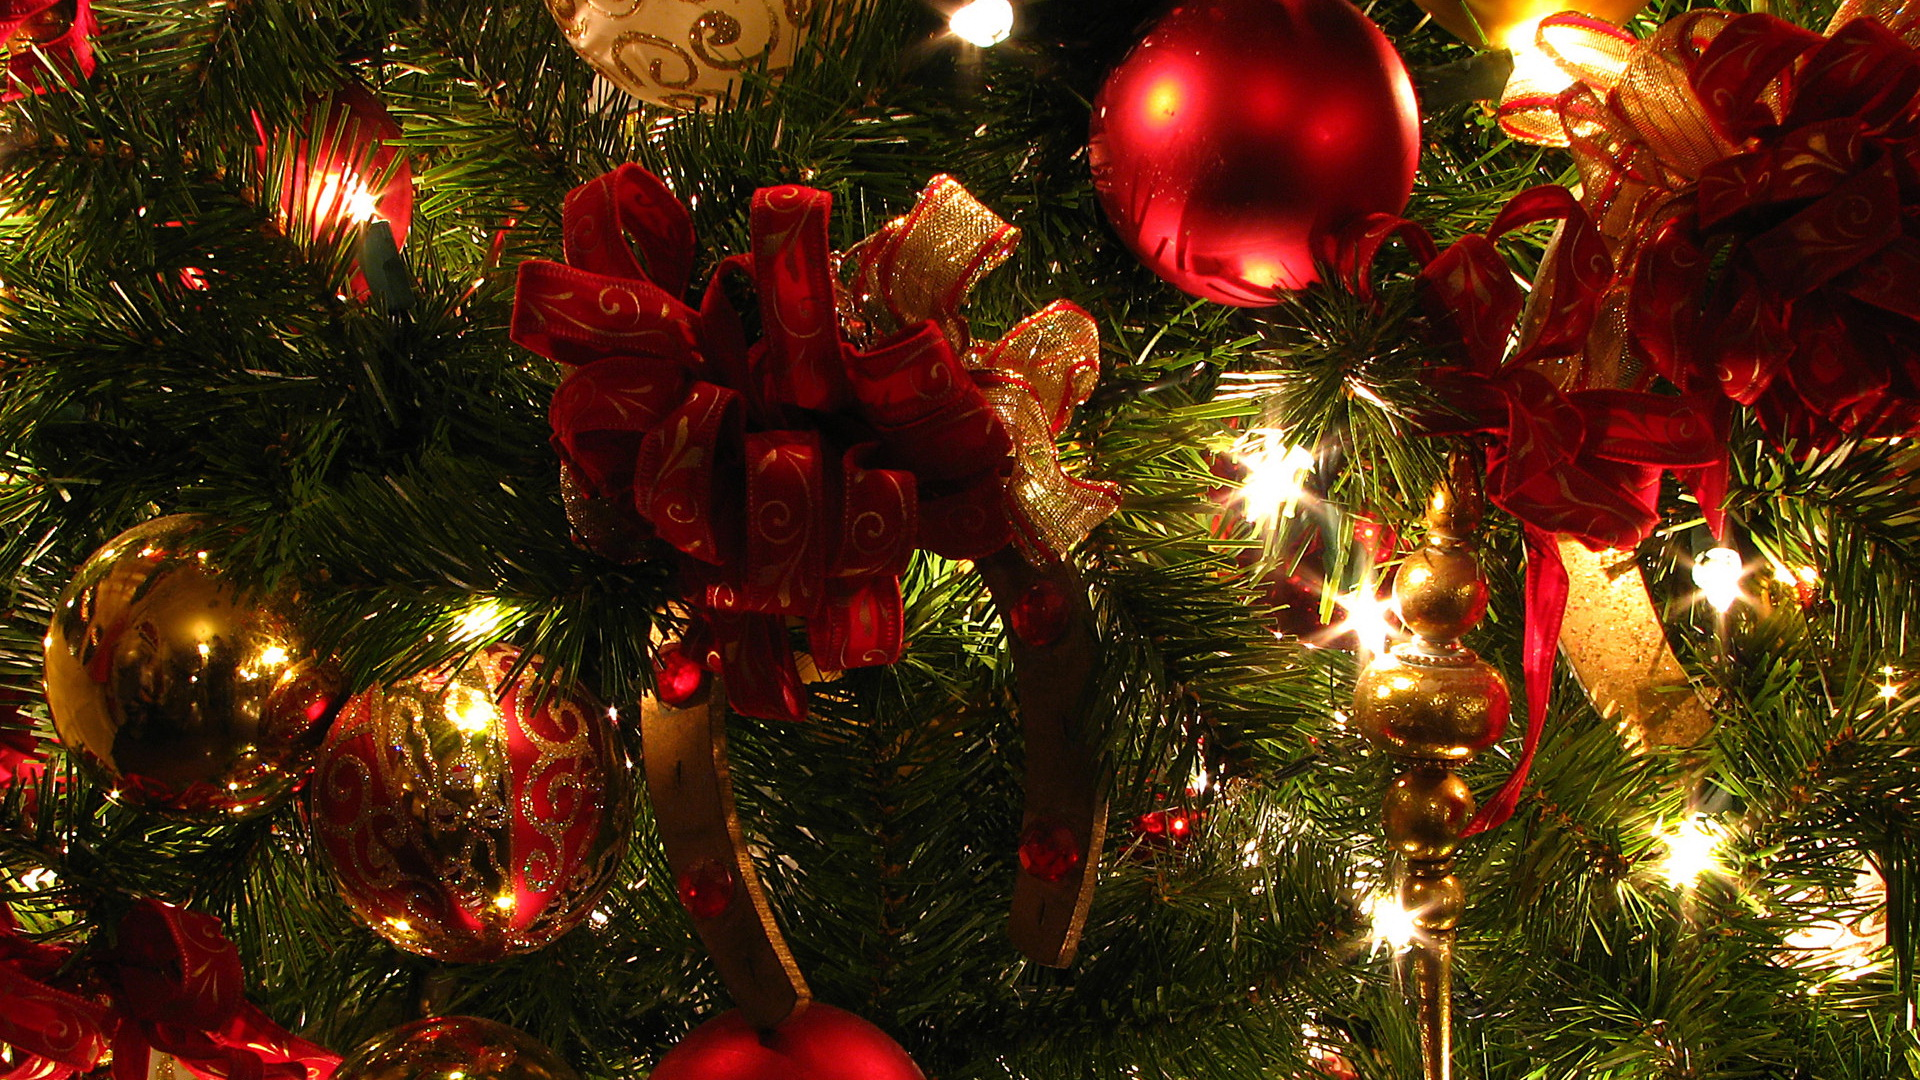 Decoration Wallpaper Christmas 2014